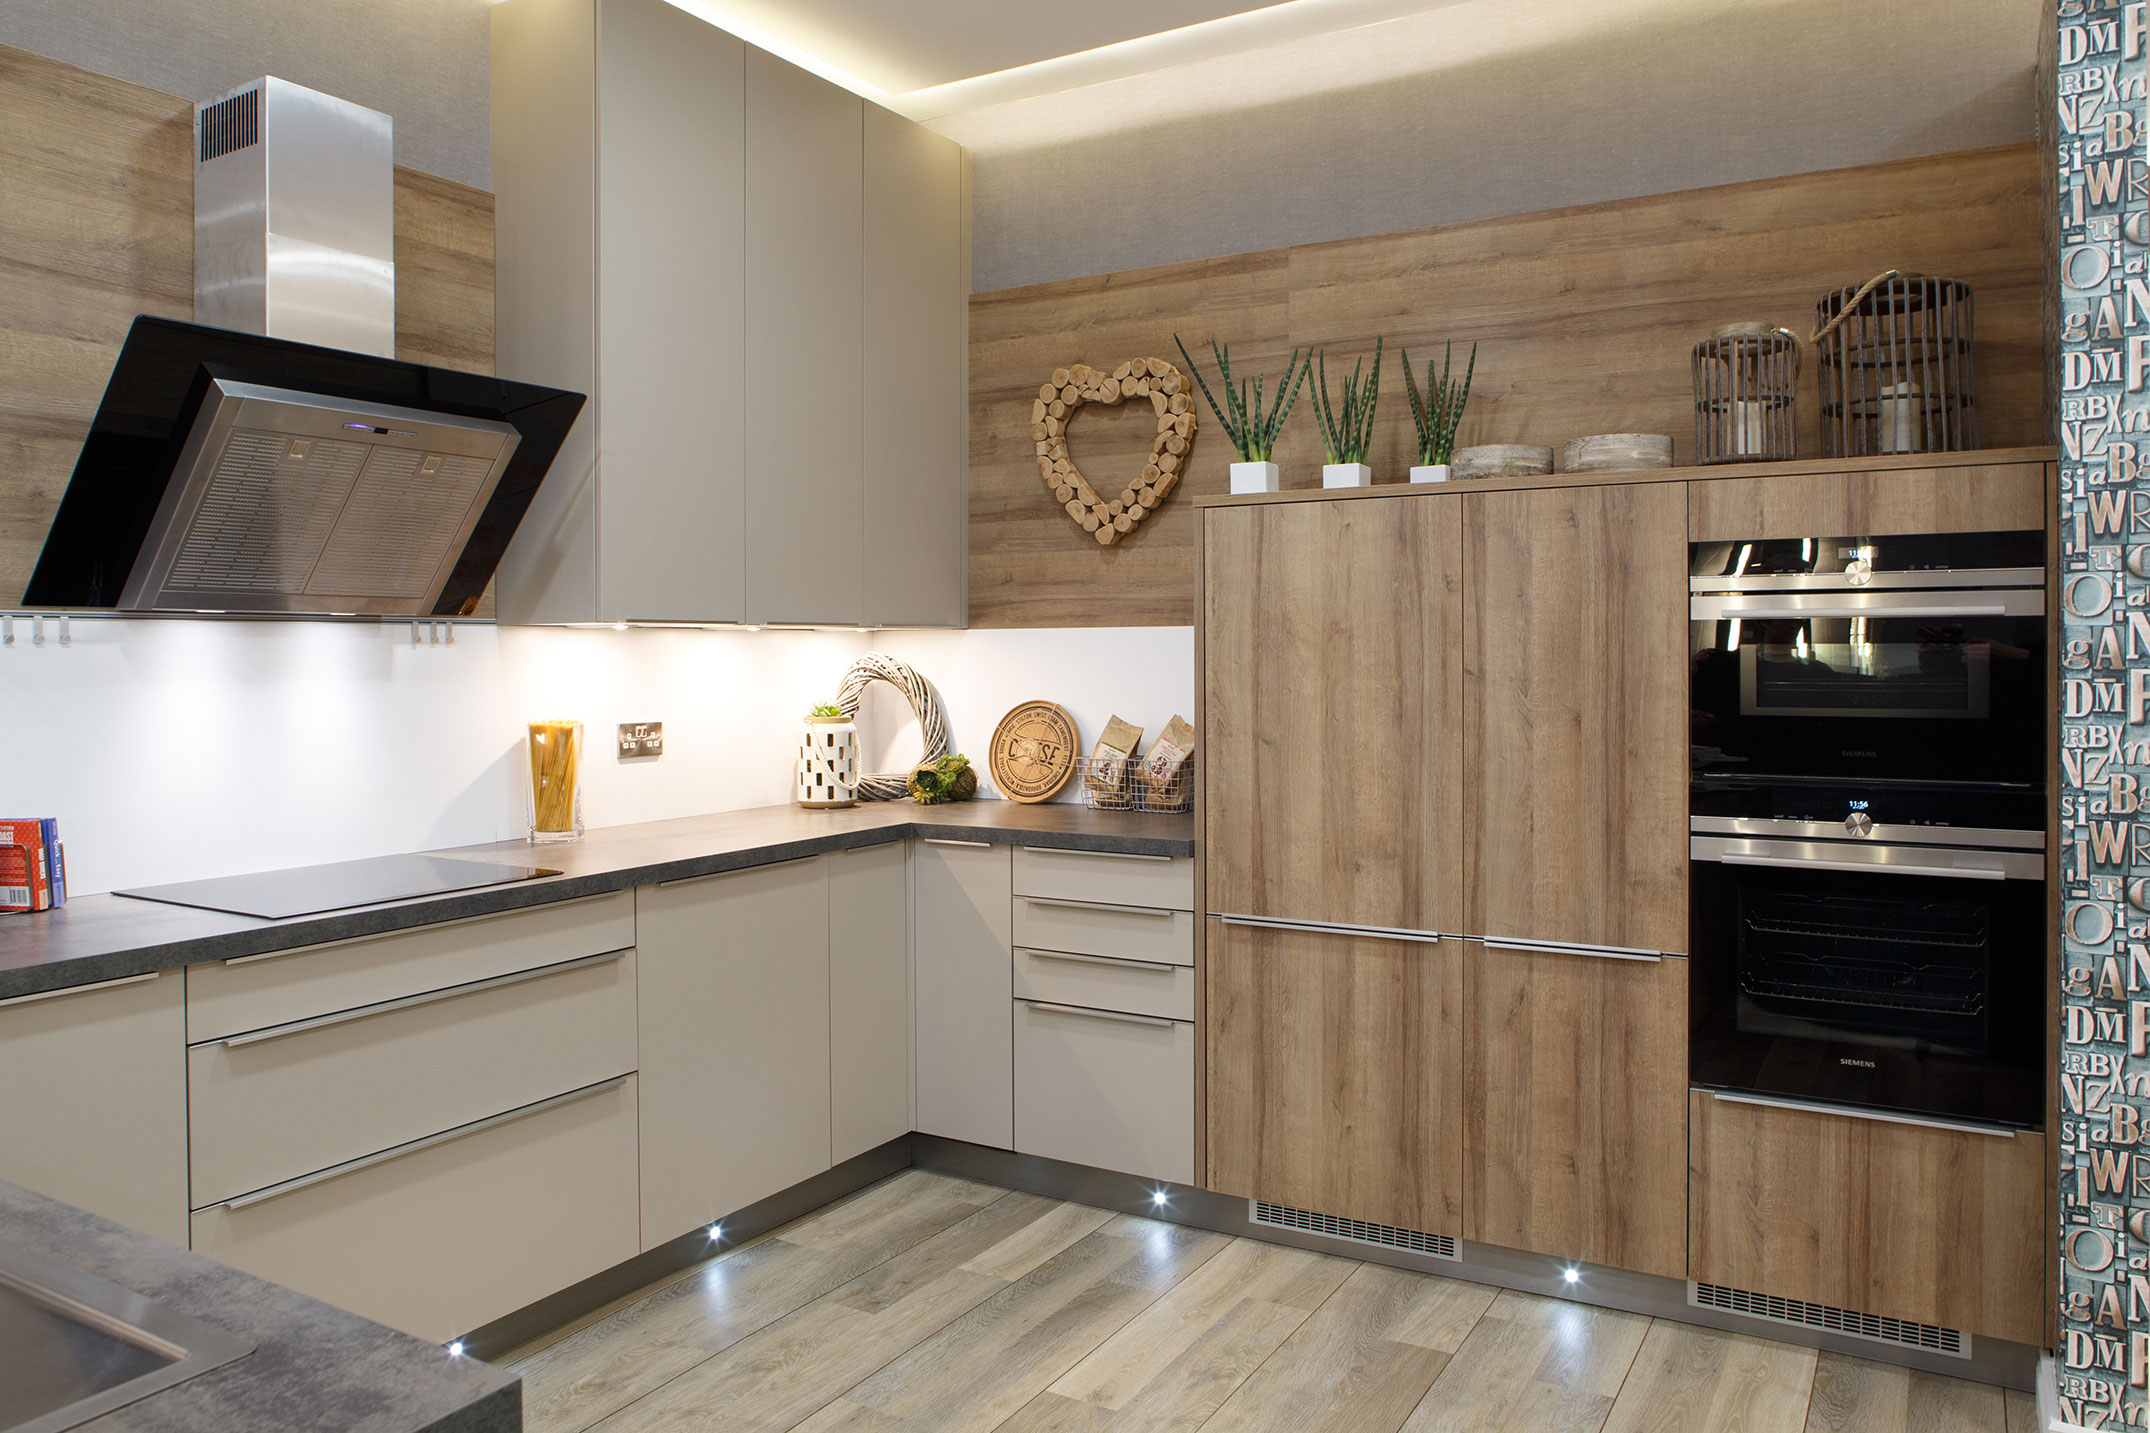 What Is The Hot Color For Kitchen Appliances